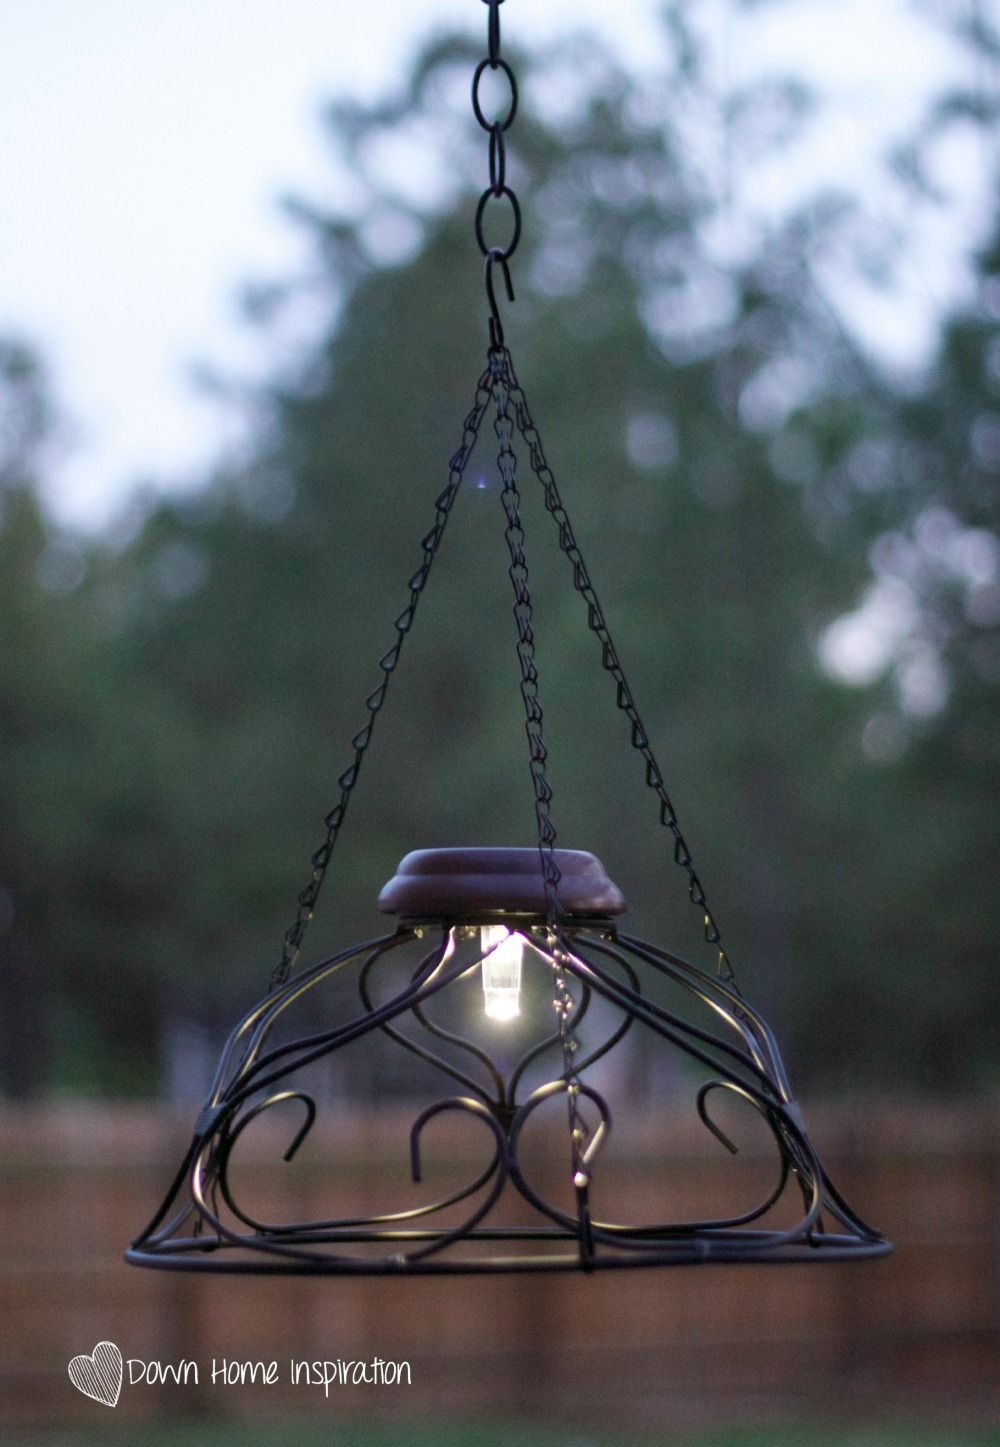 Hanging solar patio lights - Novopal Outdoor Solar Fairy Lights With Super Long 2 Year Lifespan Premium Solar String Lights For Christmas Trees Garden Porch Fence Patio Crystal